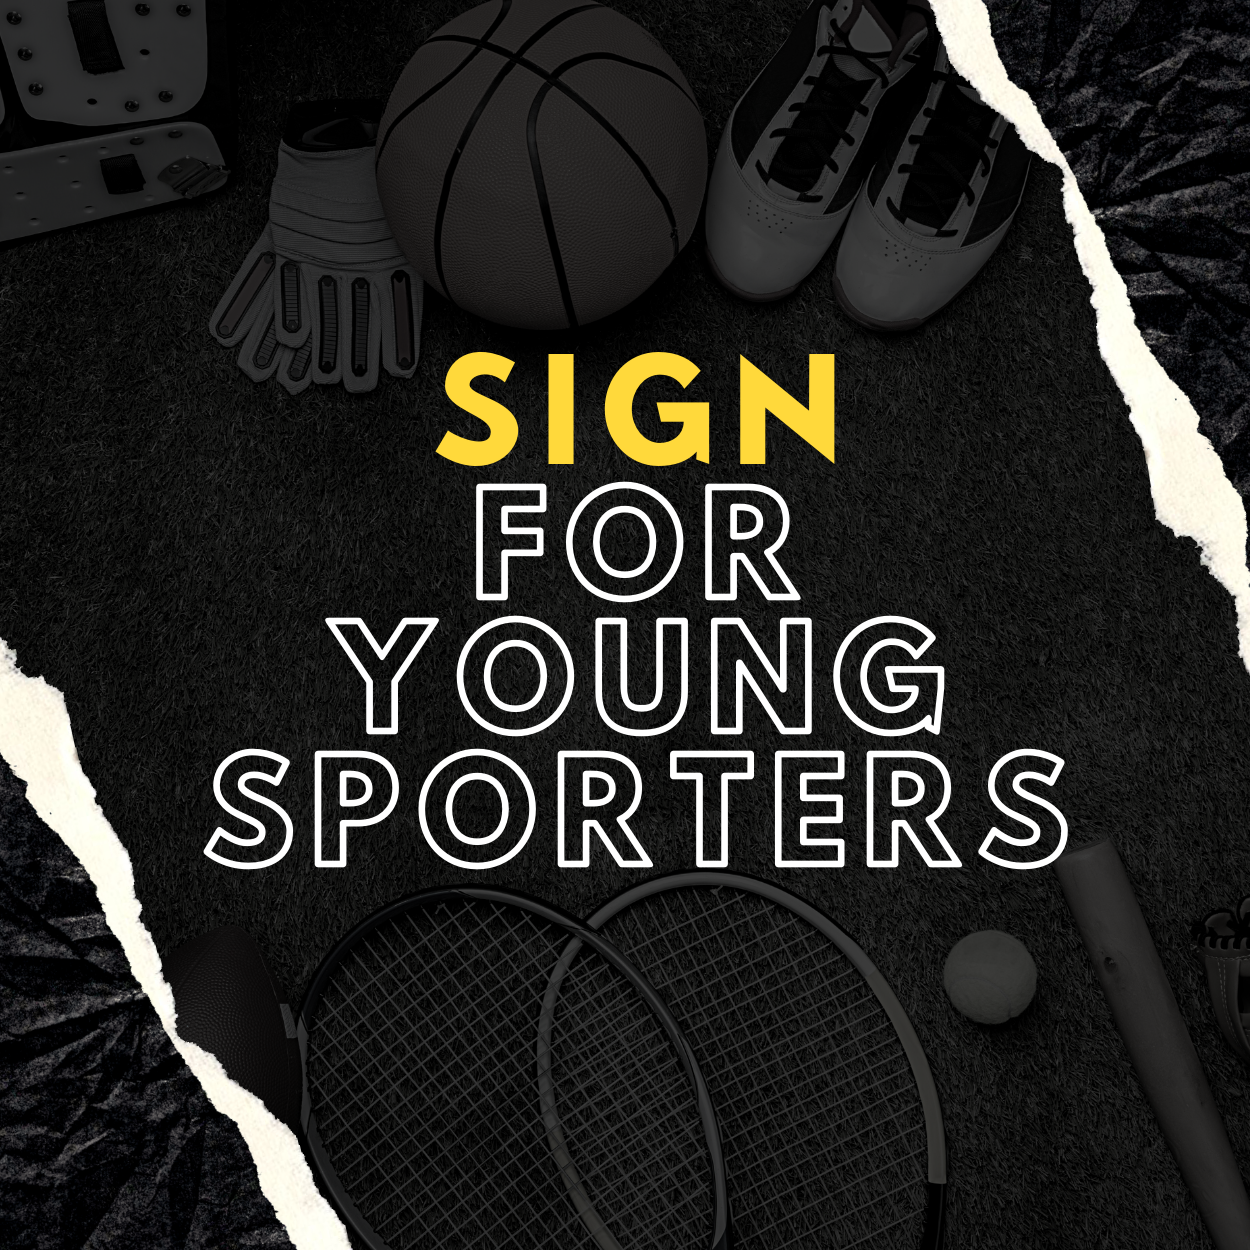 sign_FOR_YOUNG_SPORTERS.png